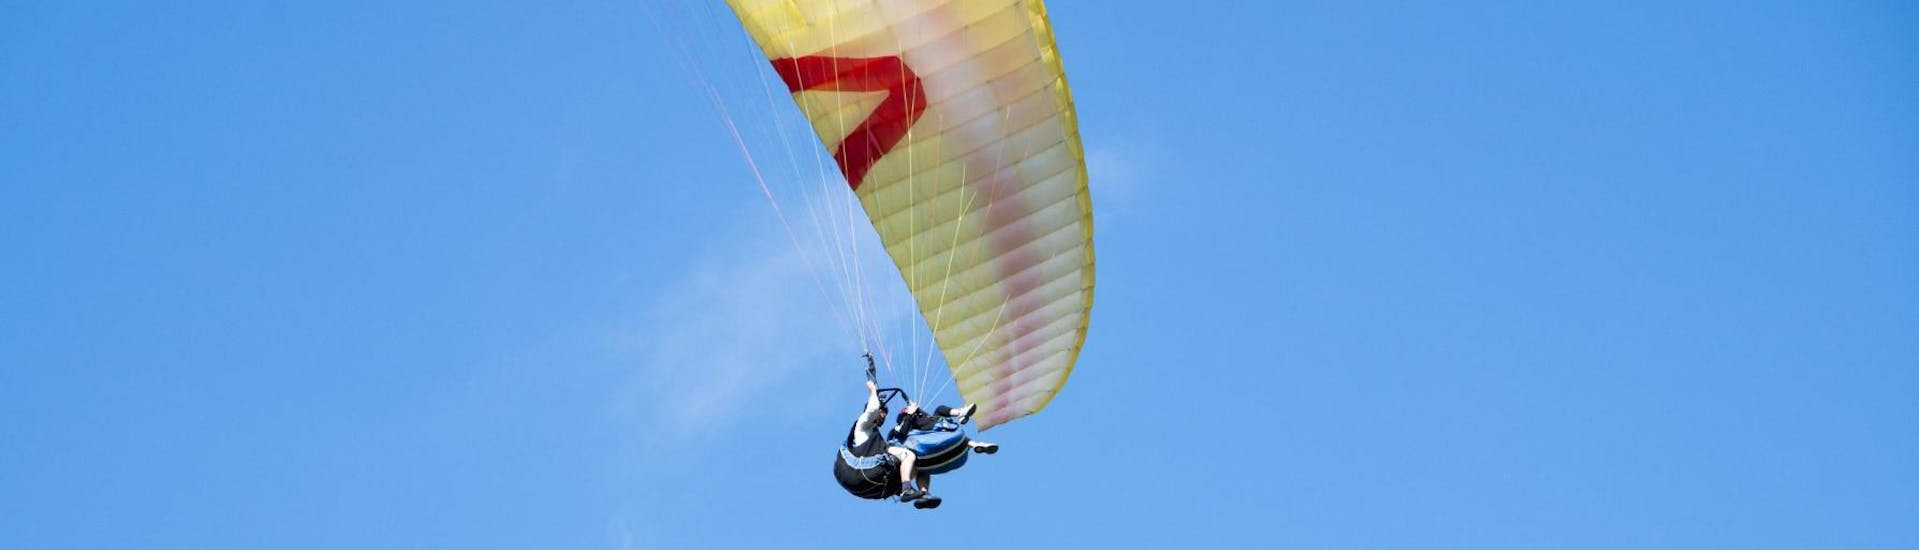 thermic-tandem-paragliding-in-the-sava-hills-sky-riders-paragliding-croatia-hero